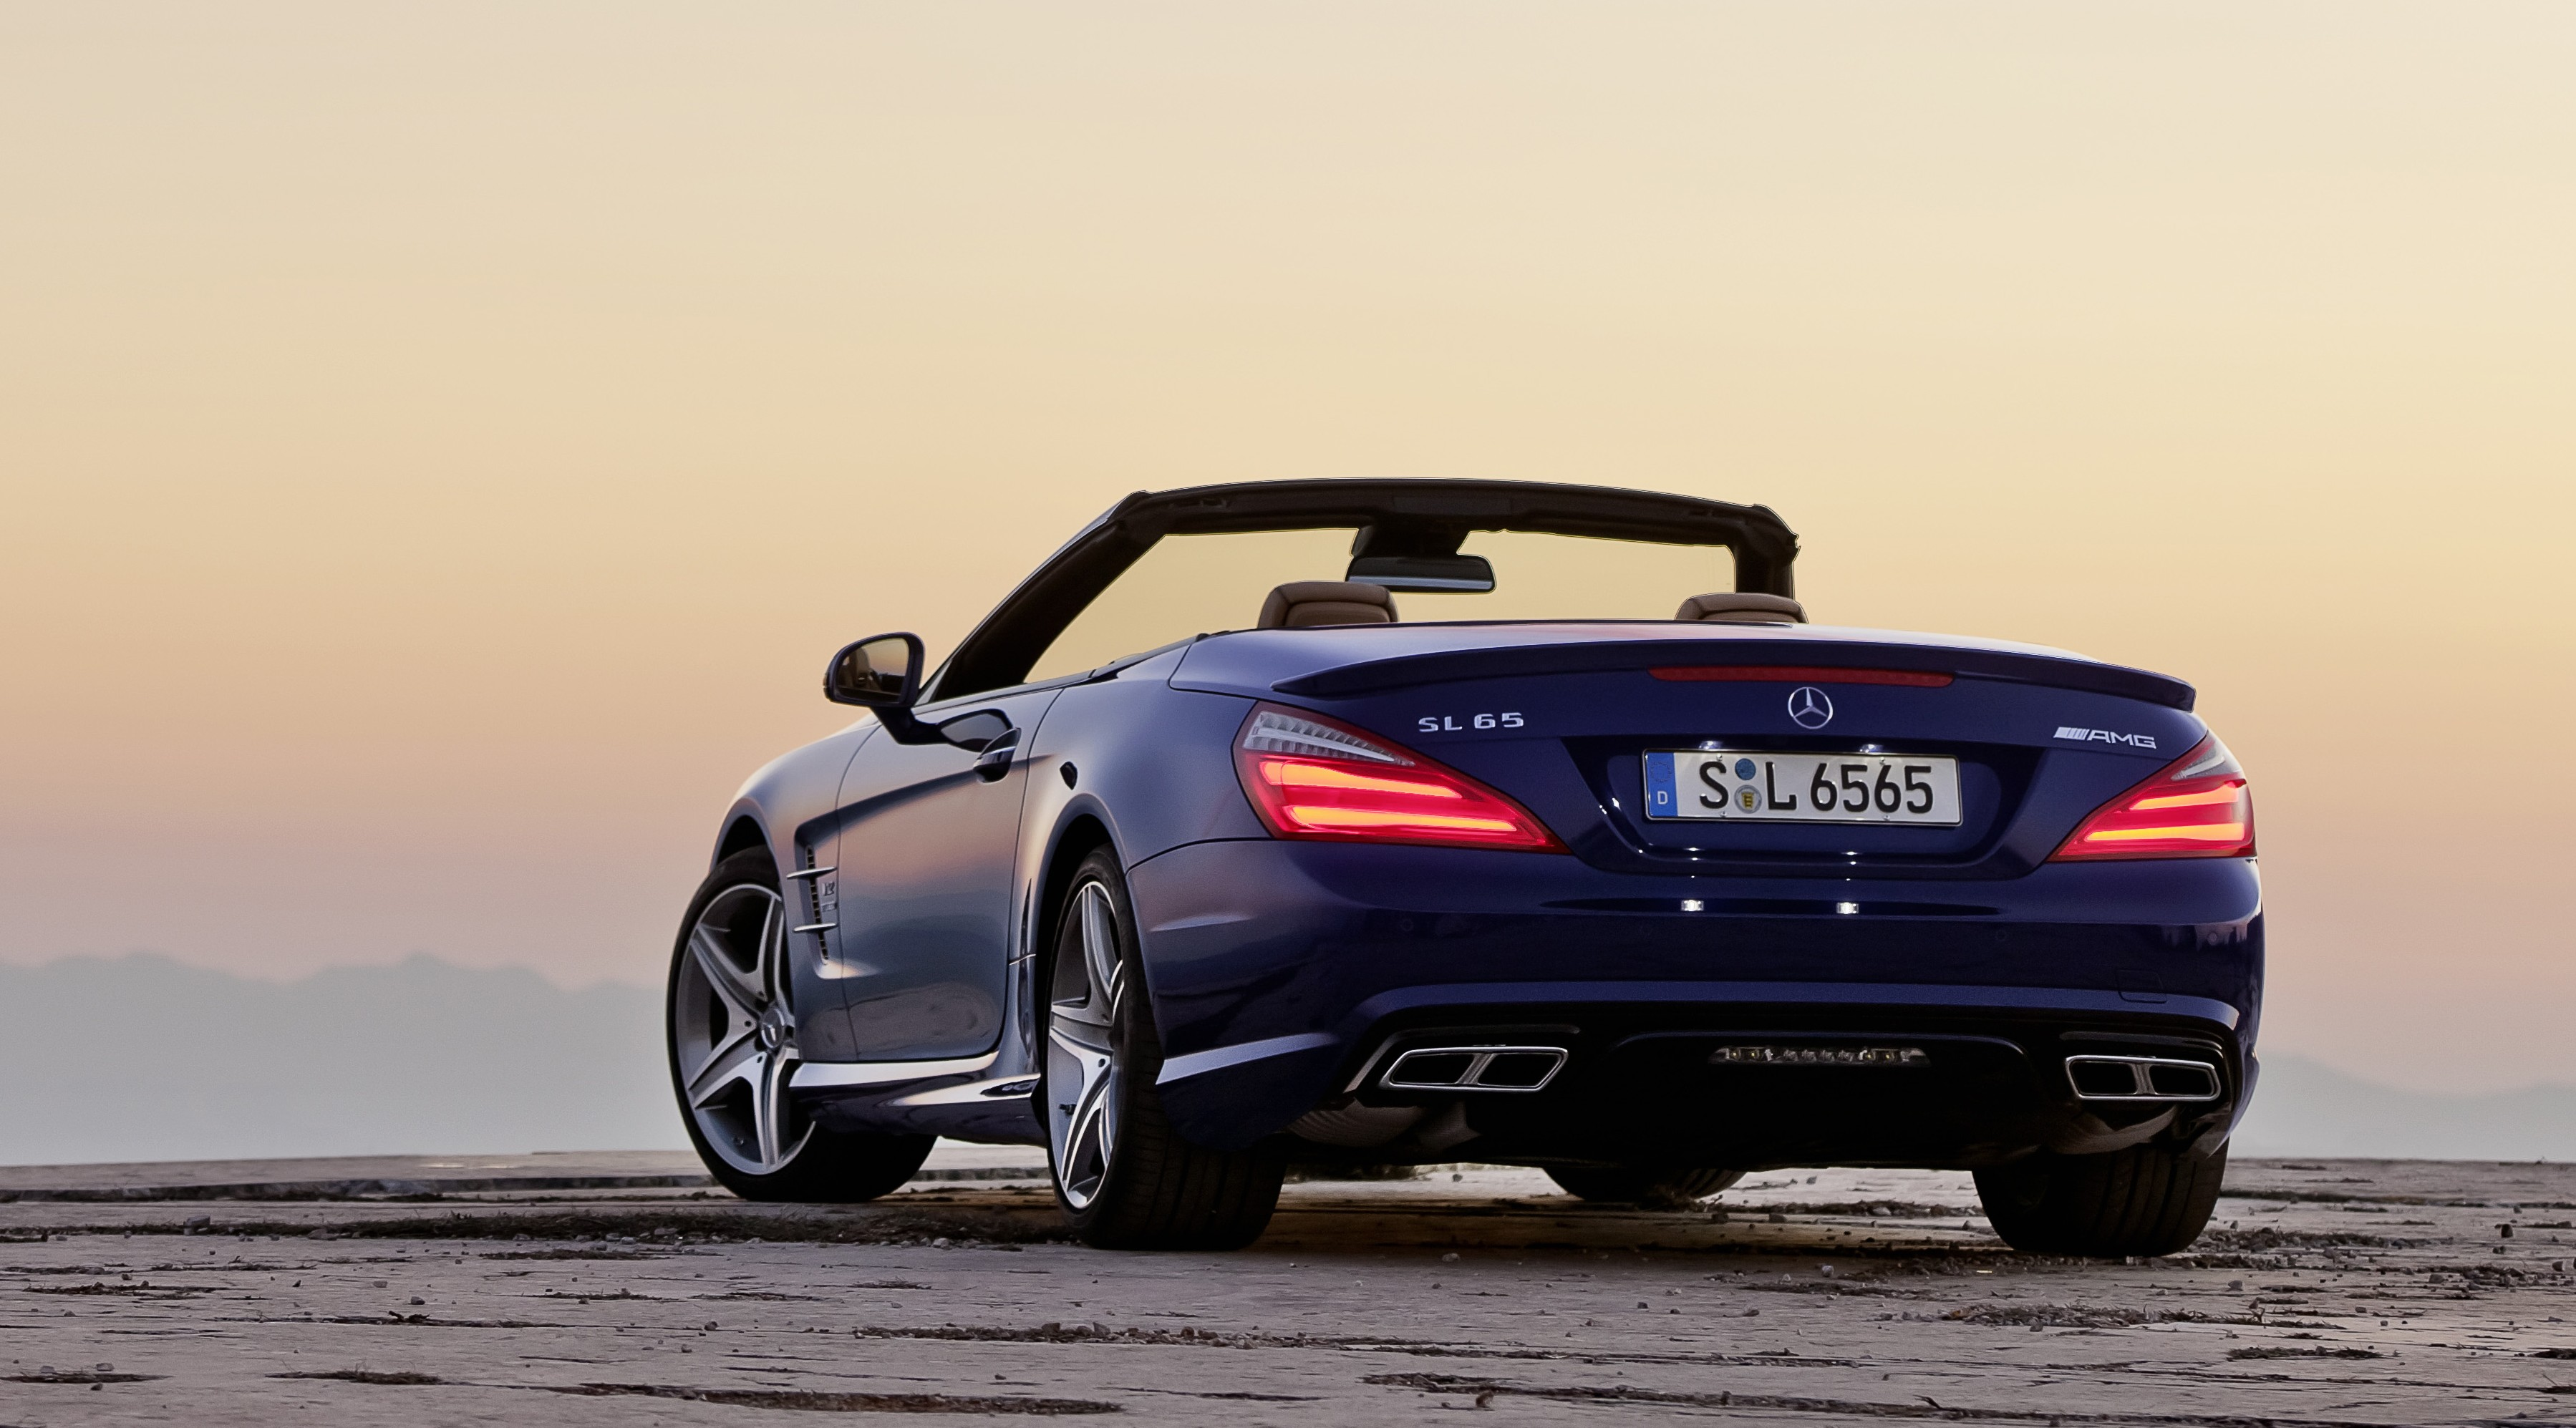 Mercedes benz sl 65 amg 650 hp and 1 000 nm image 94699 for Mercedes benz 650